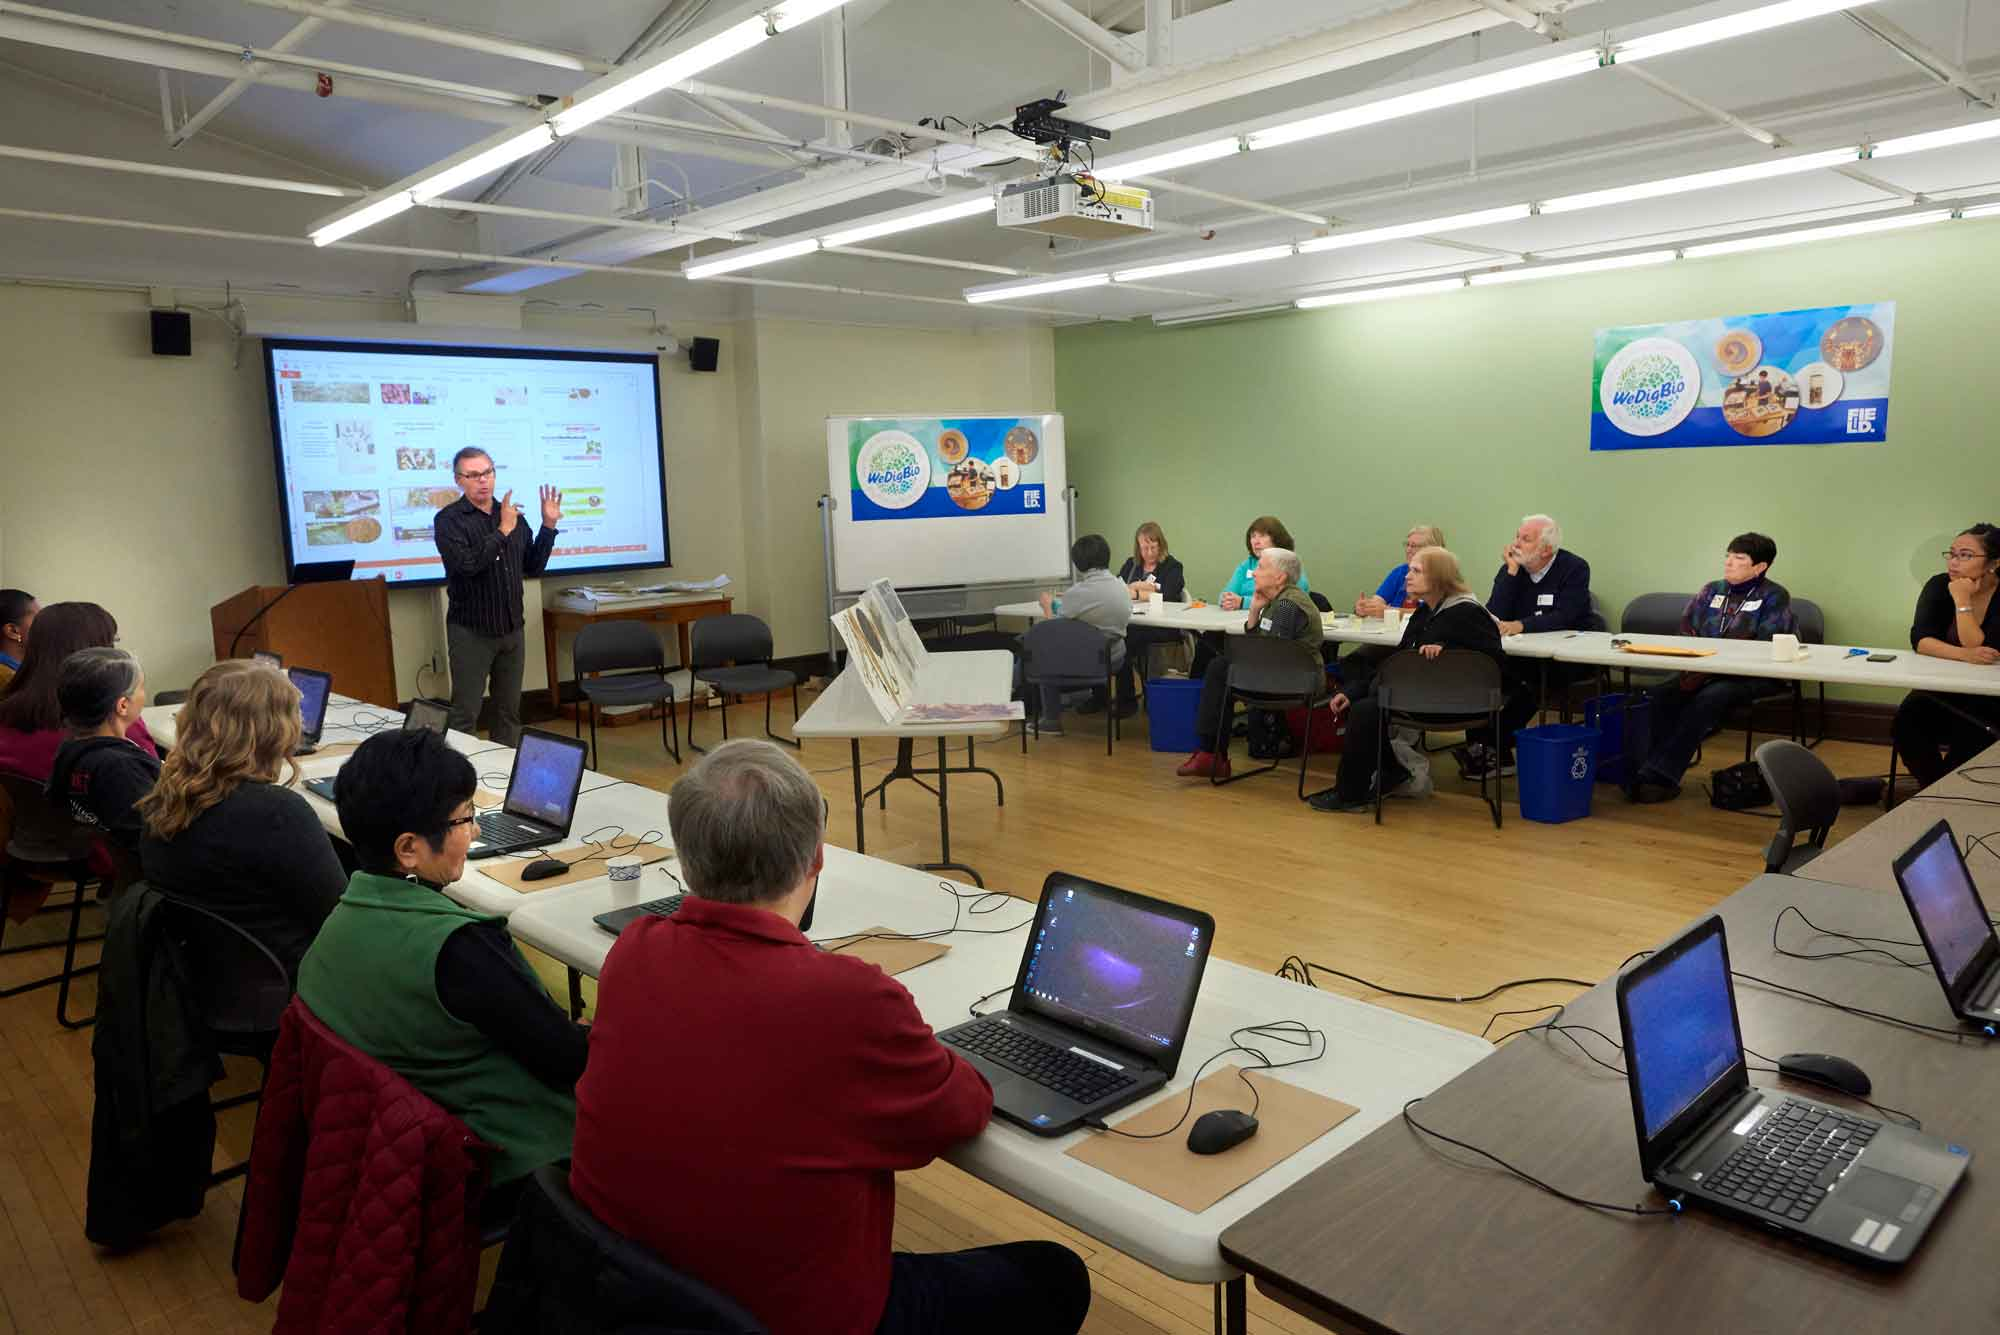 A group of volunteers gather in a classroom to digitize collections records. They sit at a set of tables arranged in a